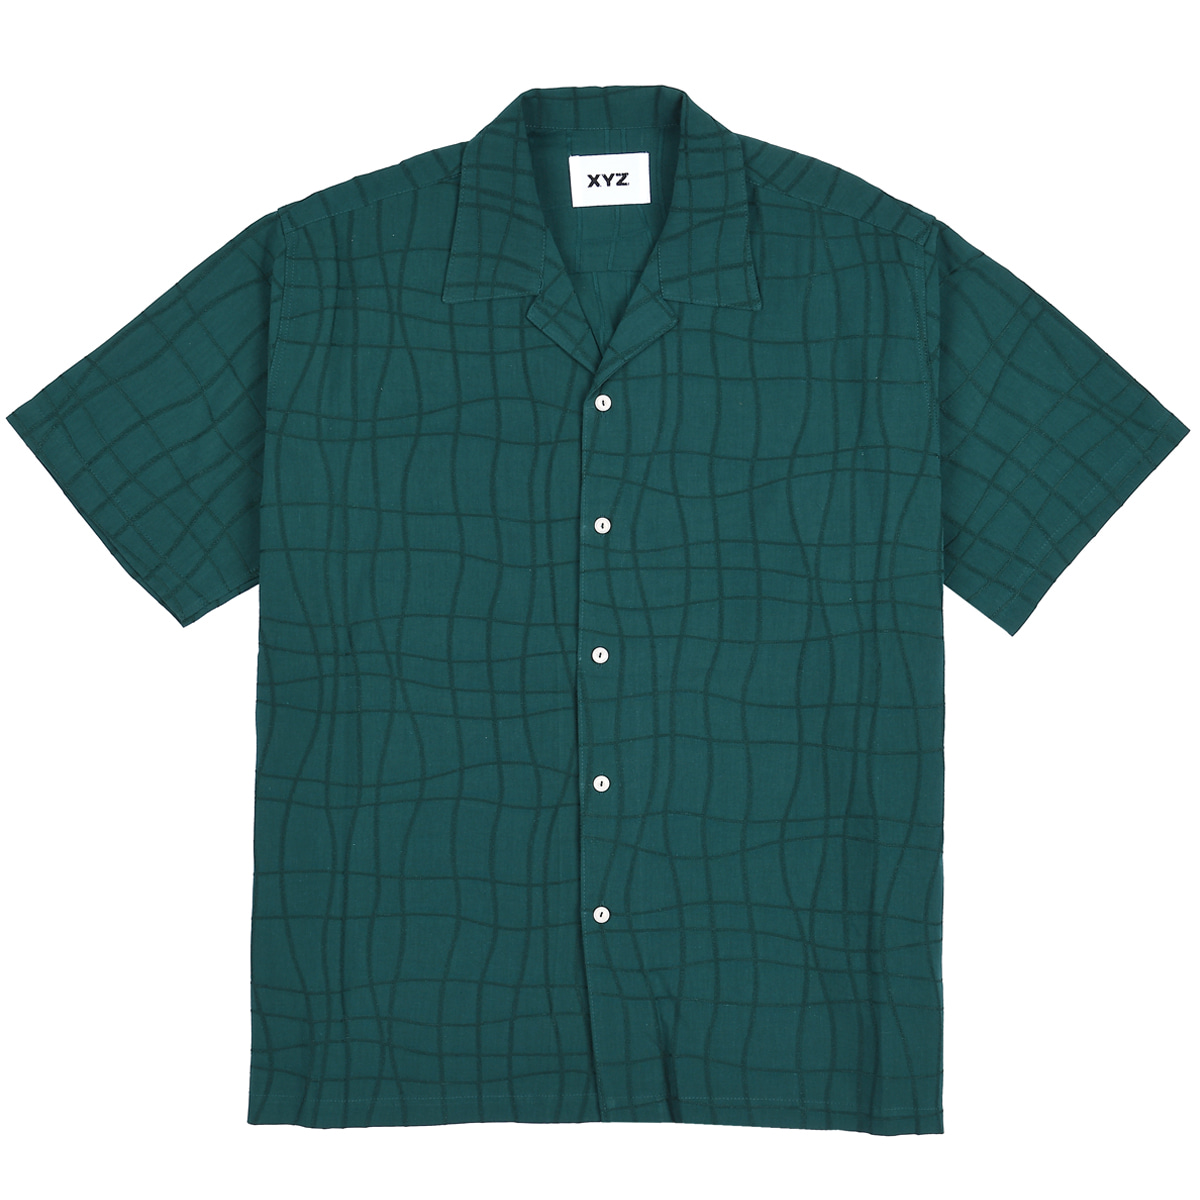 UNISEX TIE LINE SHIRTS - DEEP GREEN